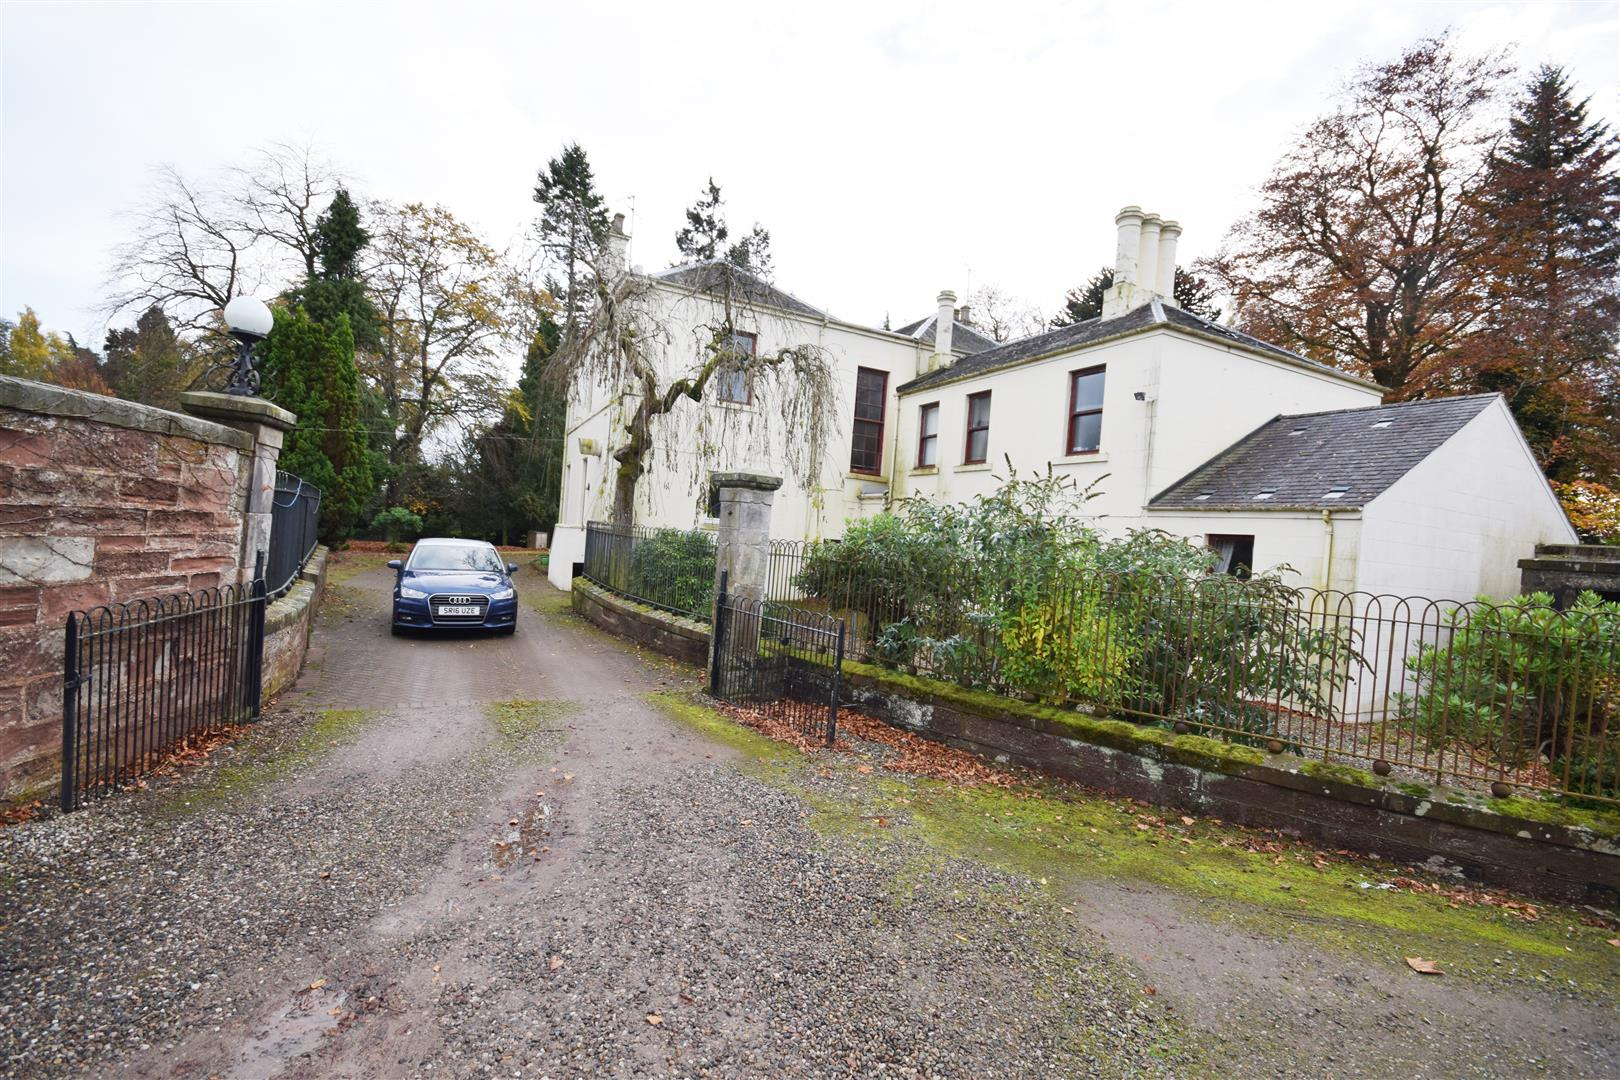 Mount Ericht, Balmoral Road, Rattray, Blairgowrie, Perthshire, PH10 7AB, UK